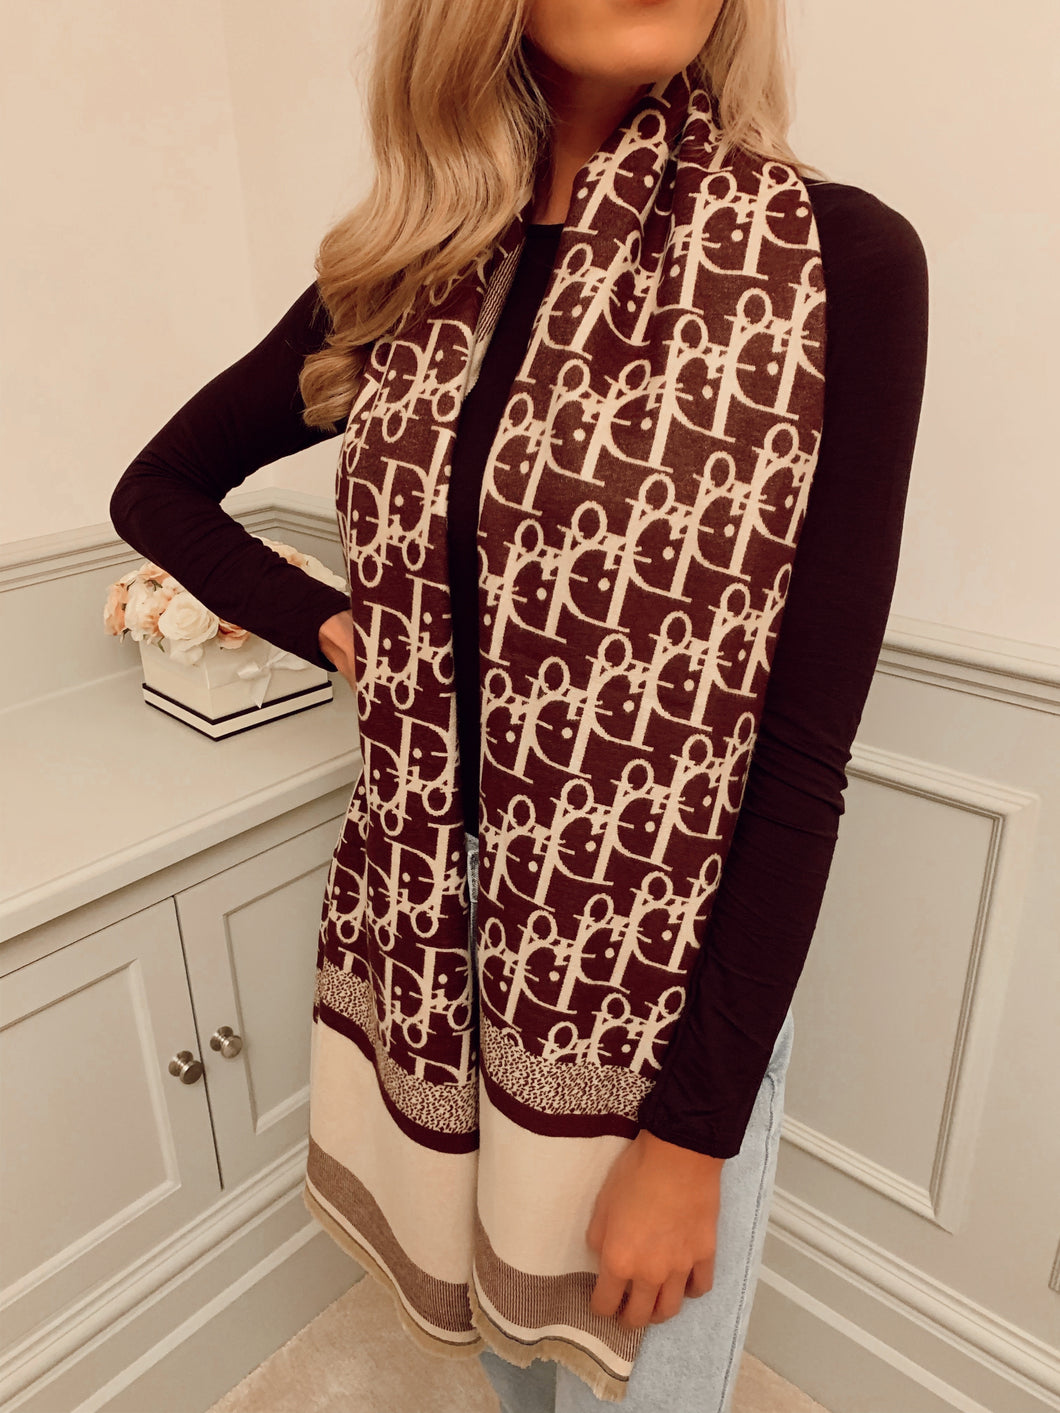 The Die For You Scarf in Brown